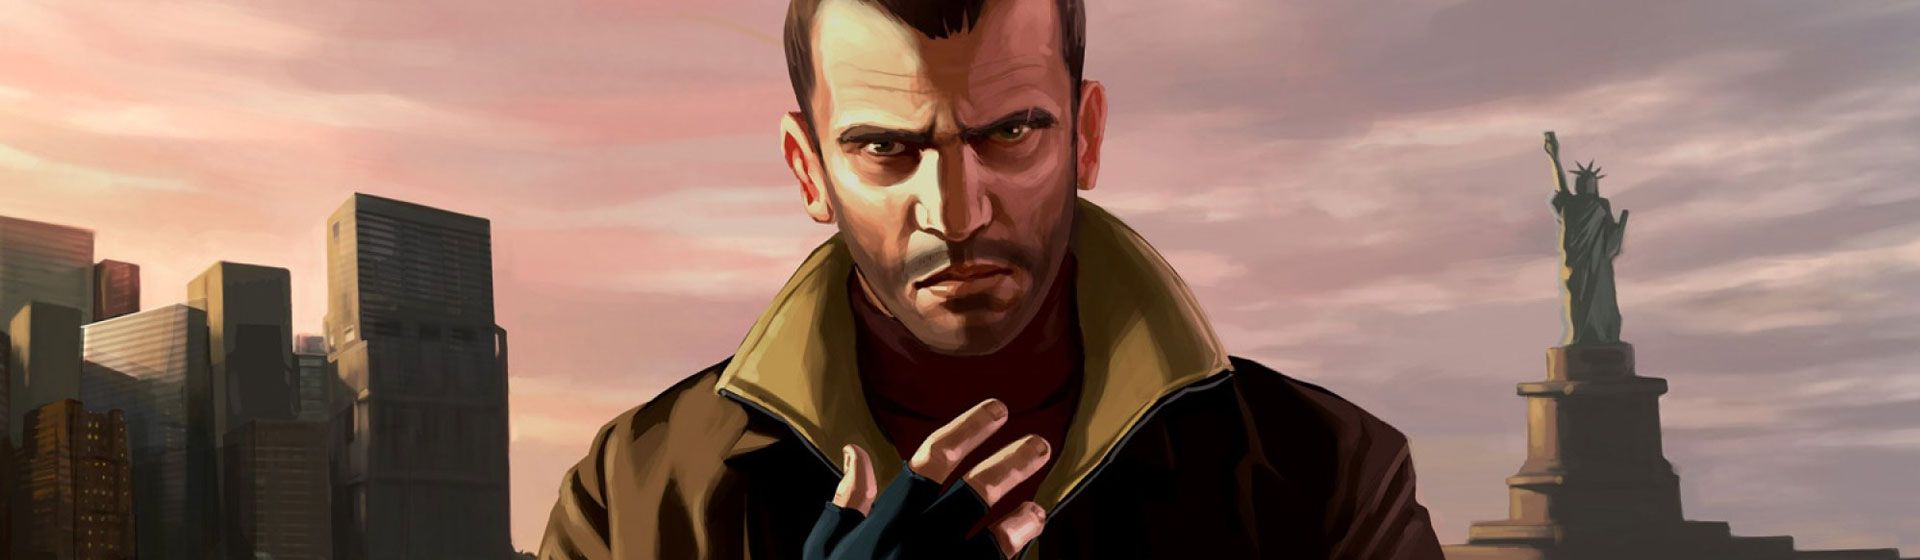 Códigos GTA 4: manhas e macetes de Xbox 360, PS3 e PC